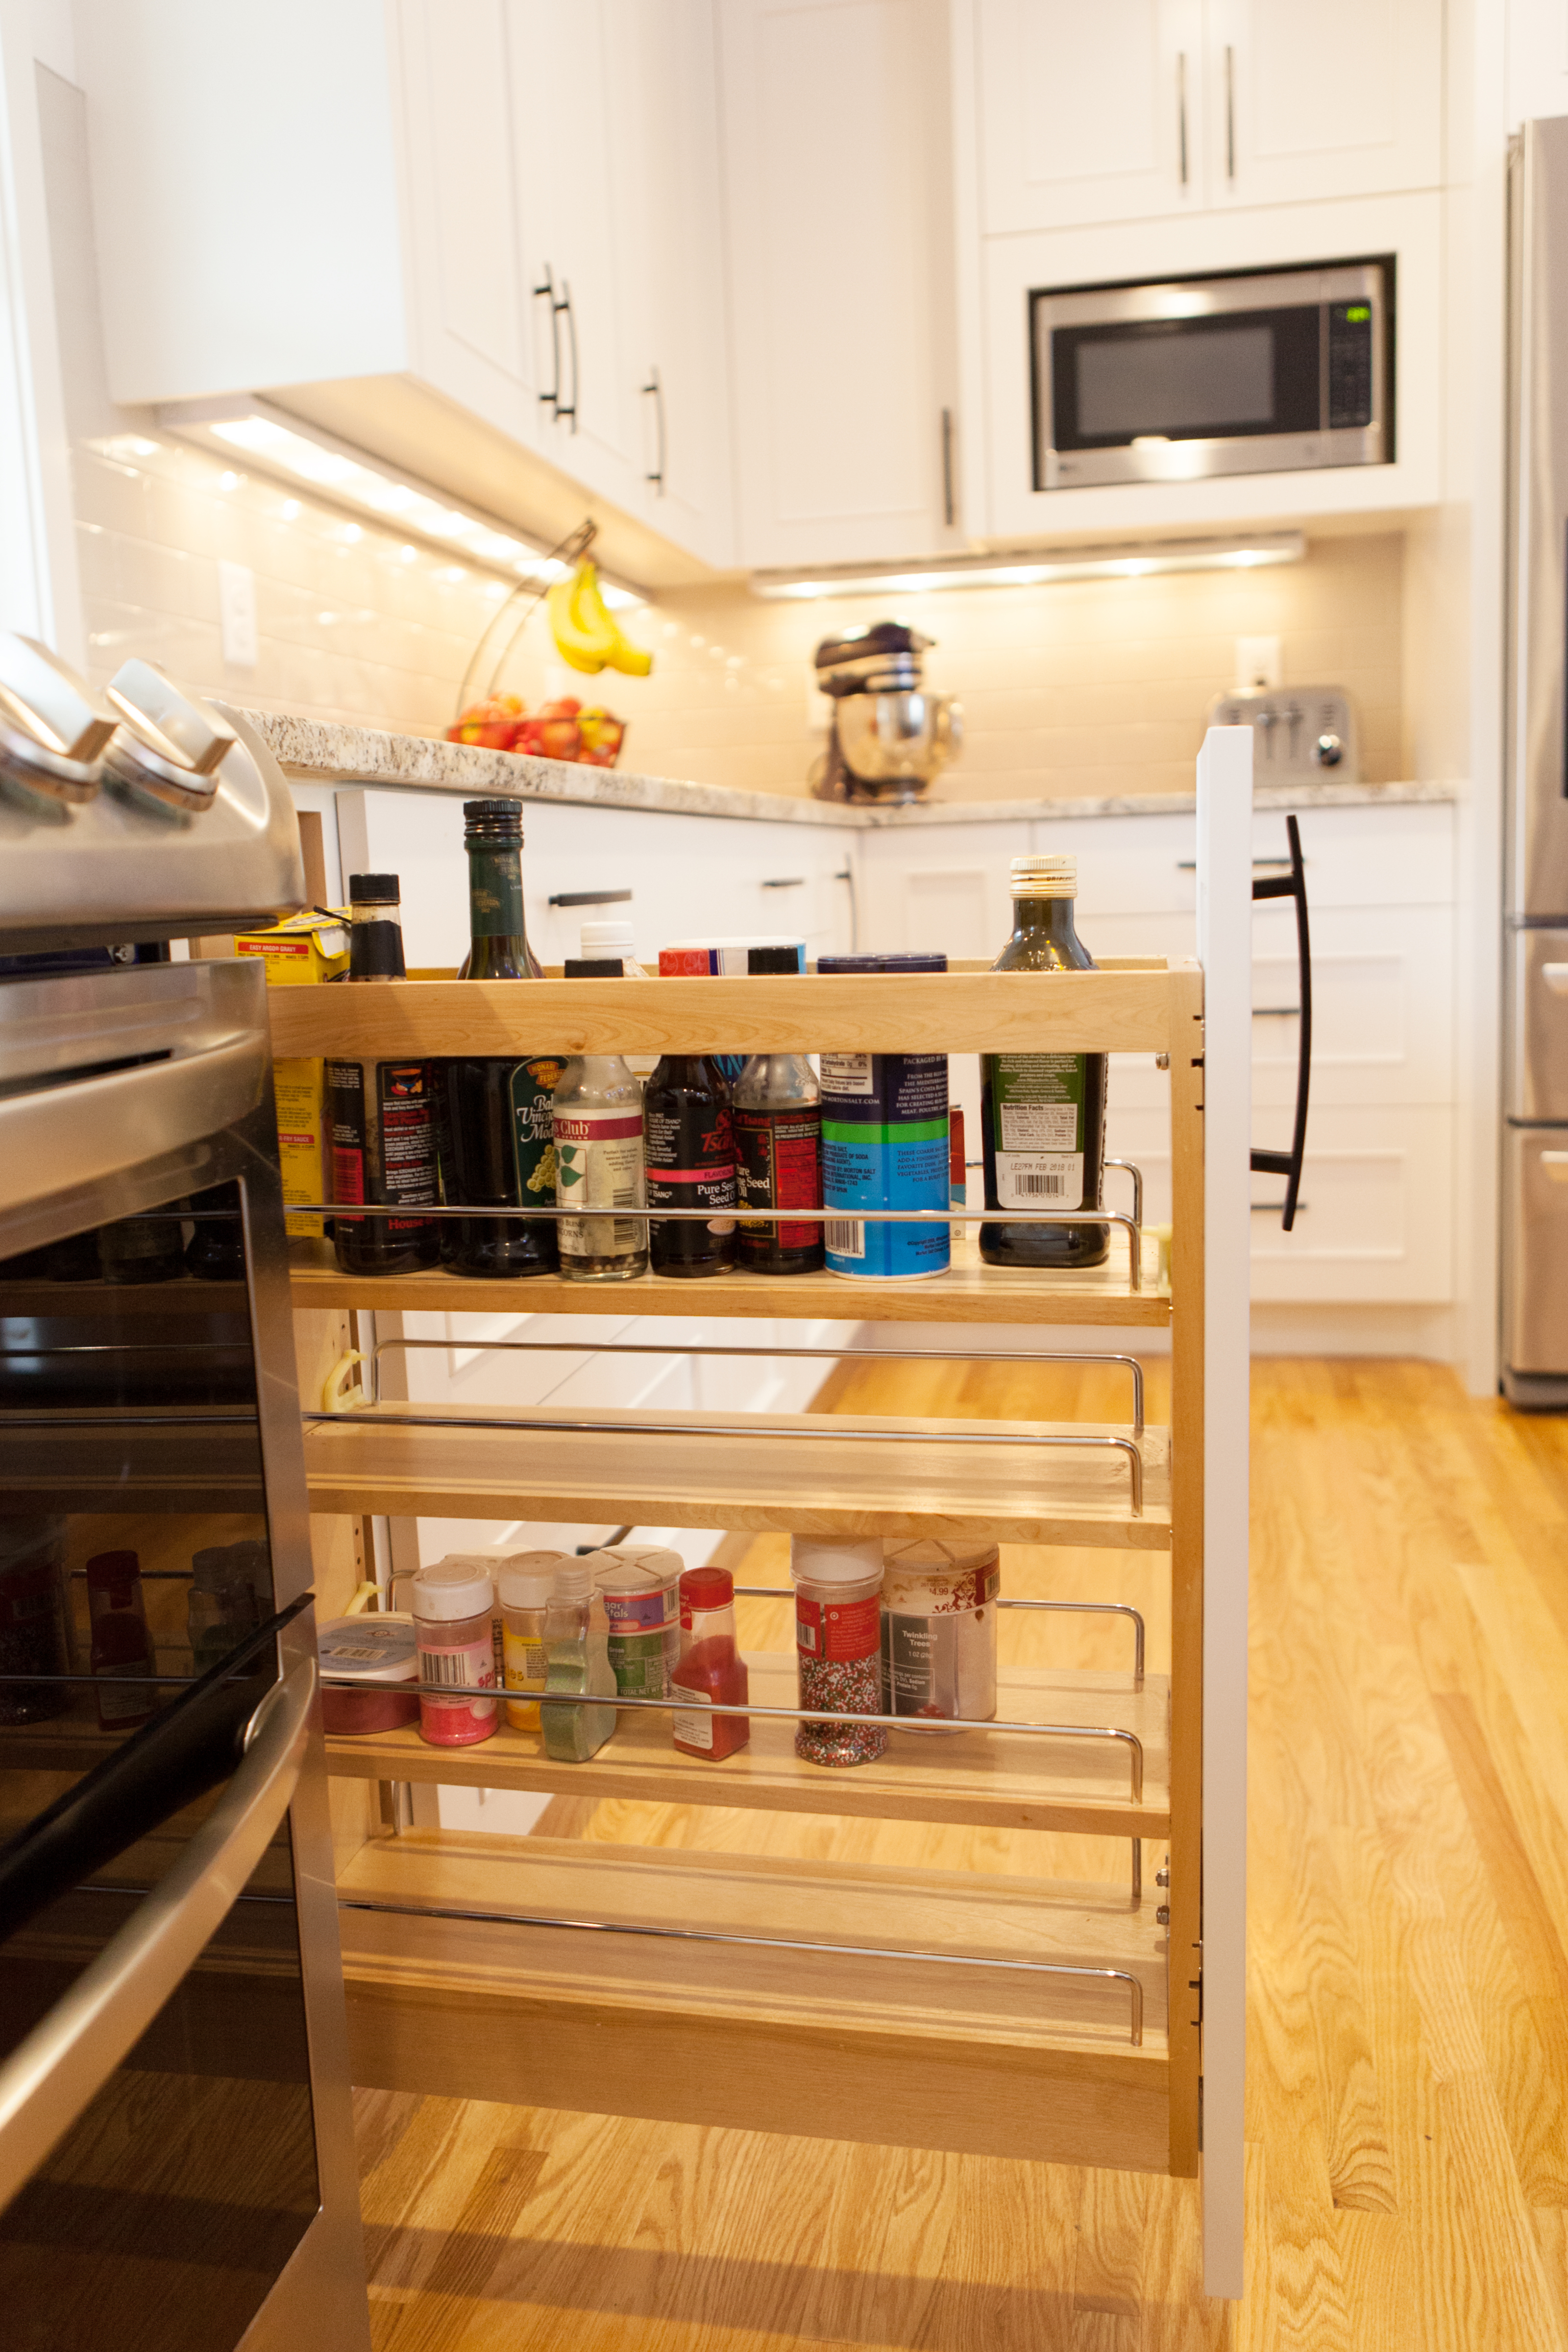 Beau To Keep Spices Organized, There Are A Couple Options That Work Well. We  Might Put A Narrow Pull Out Spice Door Added Right Next To The Stove Or  Near A Main ...